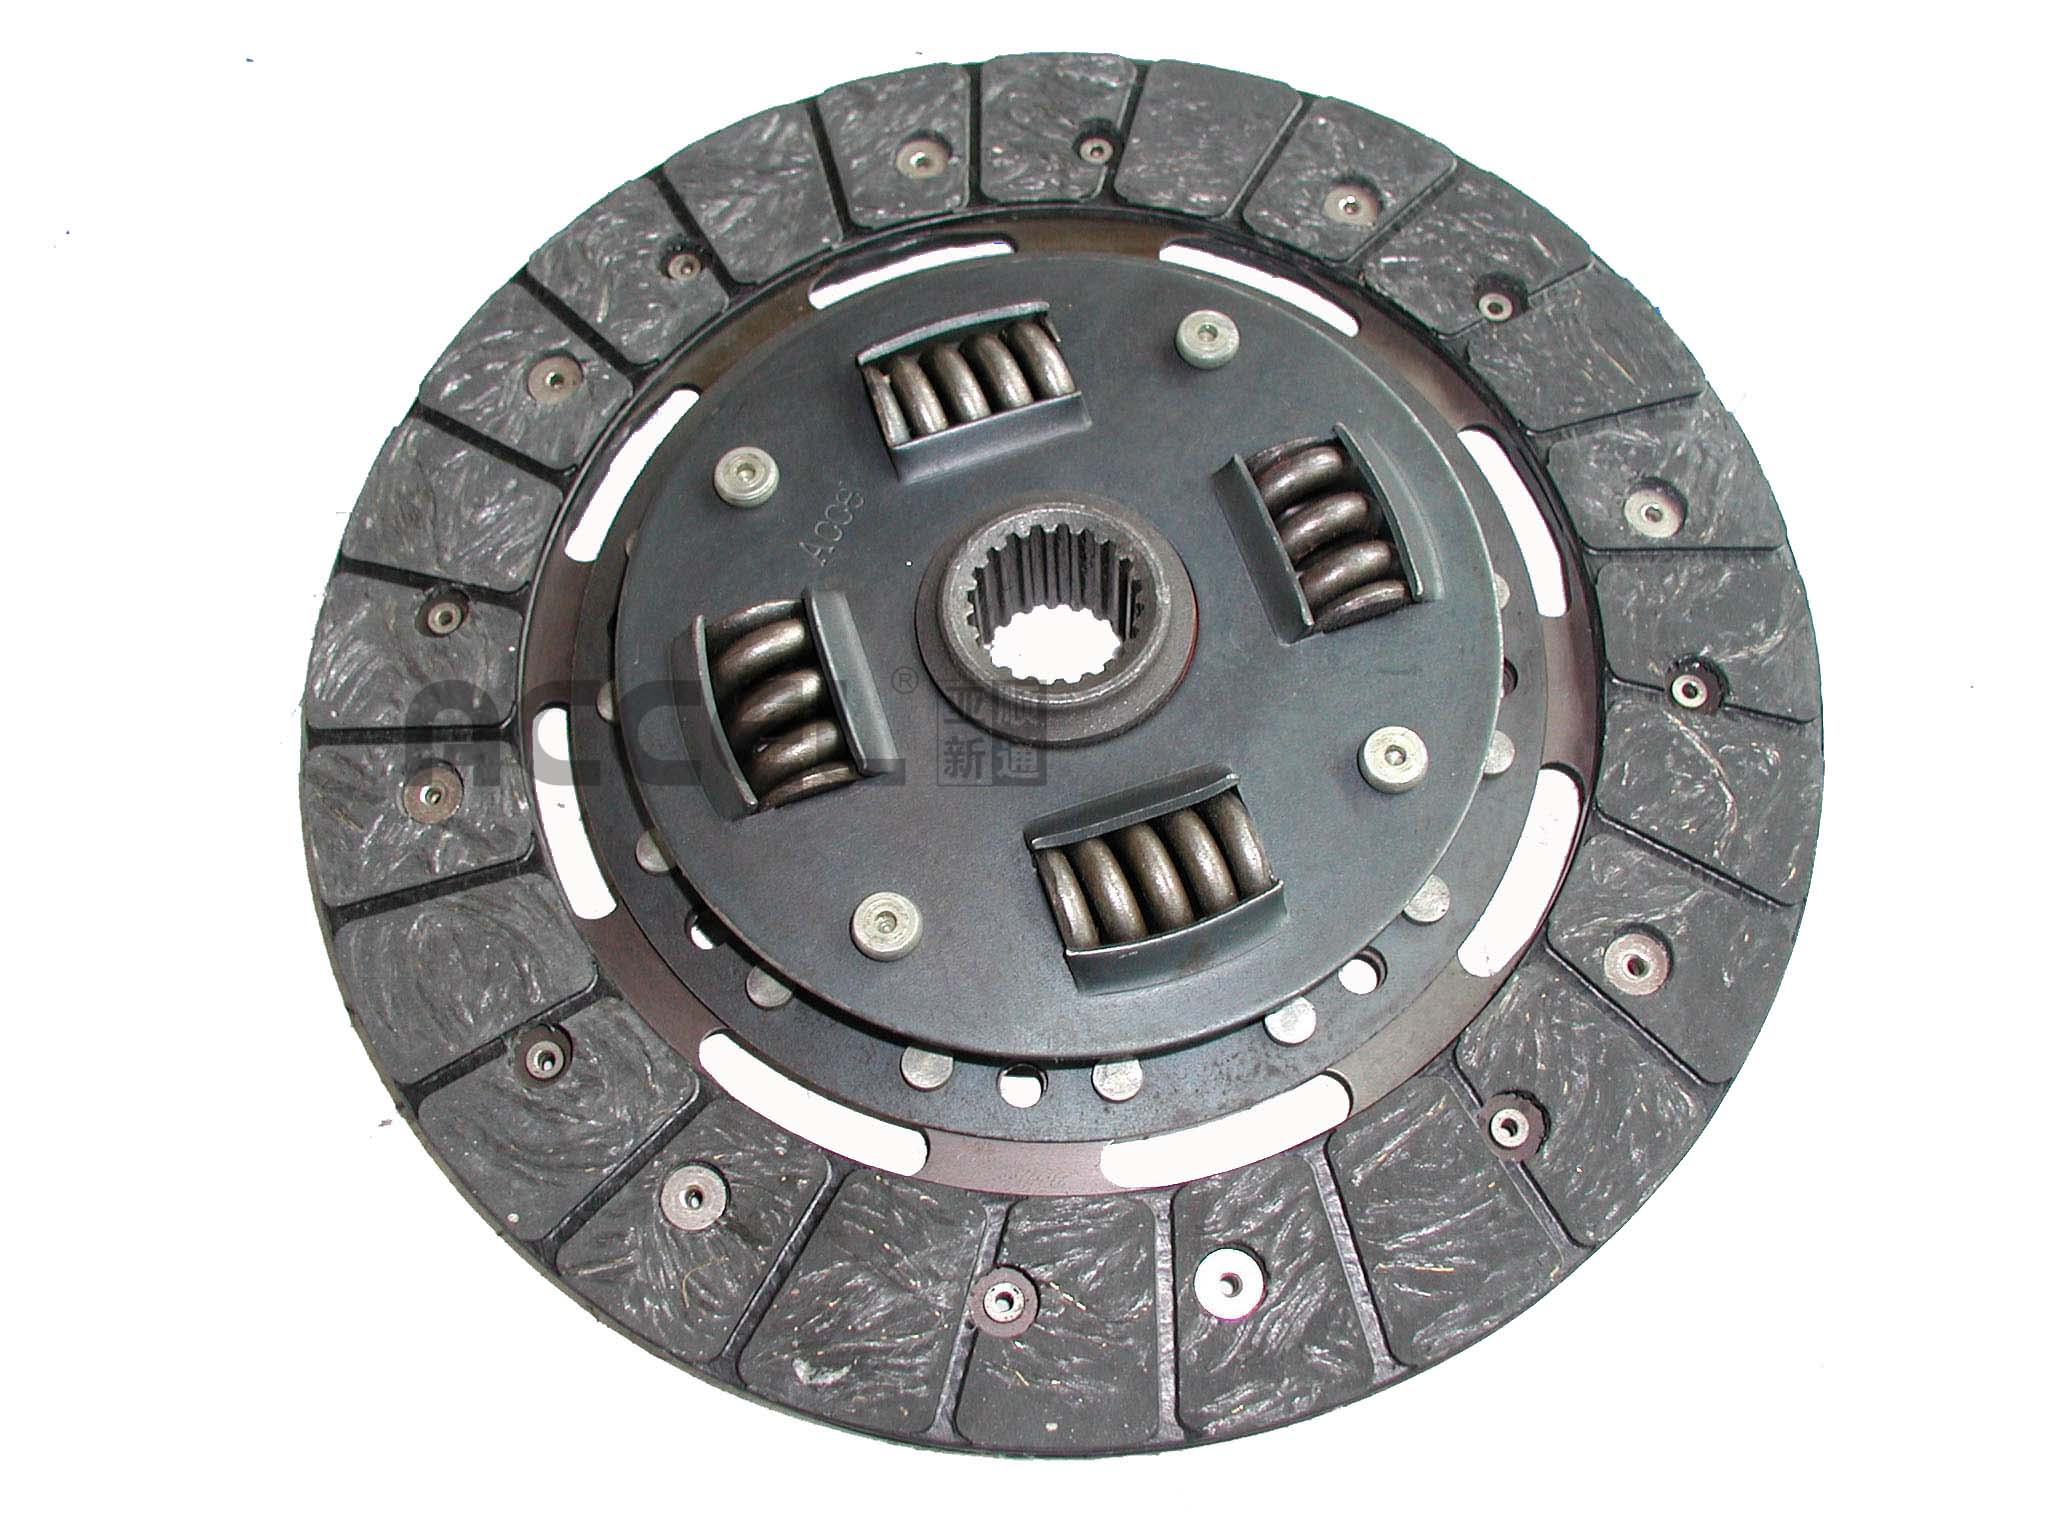 Clutch Disc/OE:22200-PM7-J00/200*140*20*22/AHC-003/HONDA/CL0131/DH-011